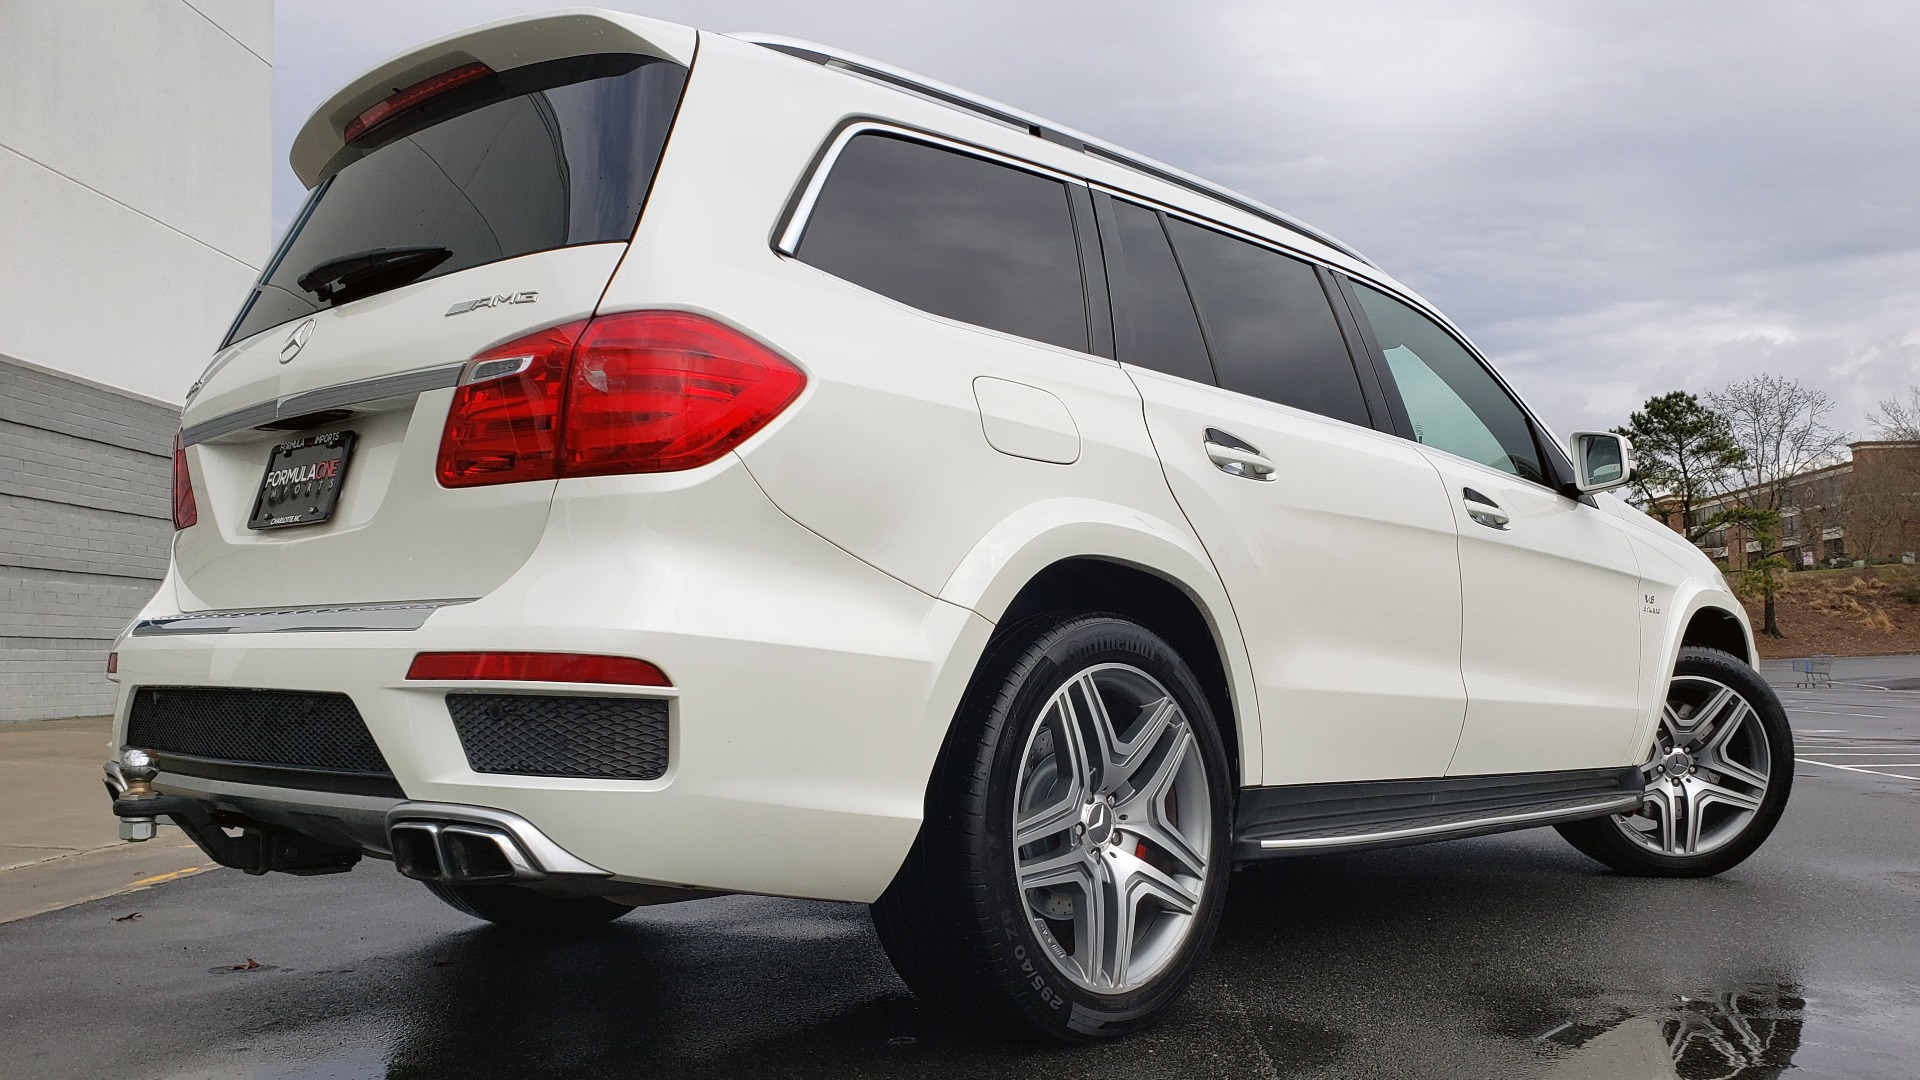 Used 2014 Mercedes-Benz GL-CLASS GL 63 AMG 4MATIC / NIGHT VIEW ASSIST PLUS / BANG & OLUFSEN SND for sale Sold at Formula Imports in Charlotte NC 28227 2